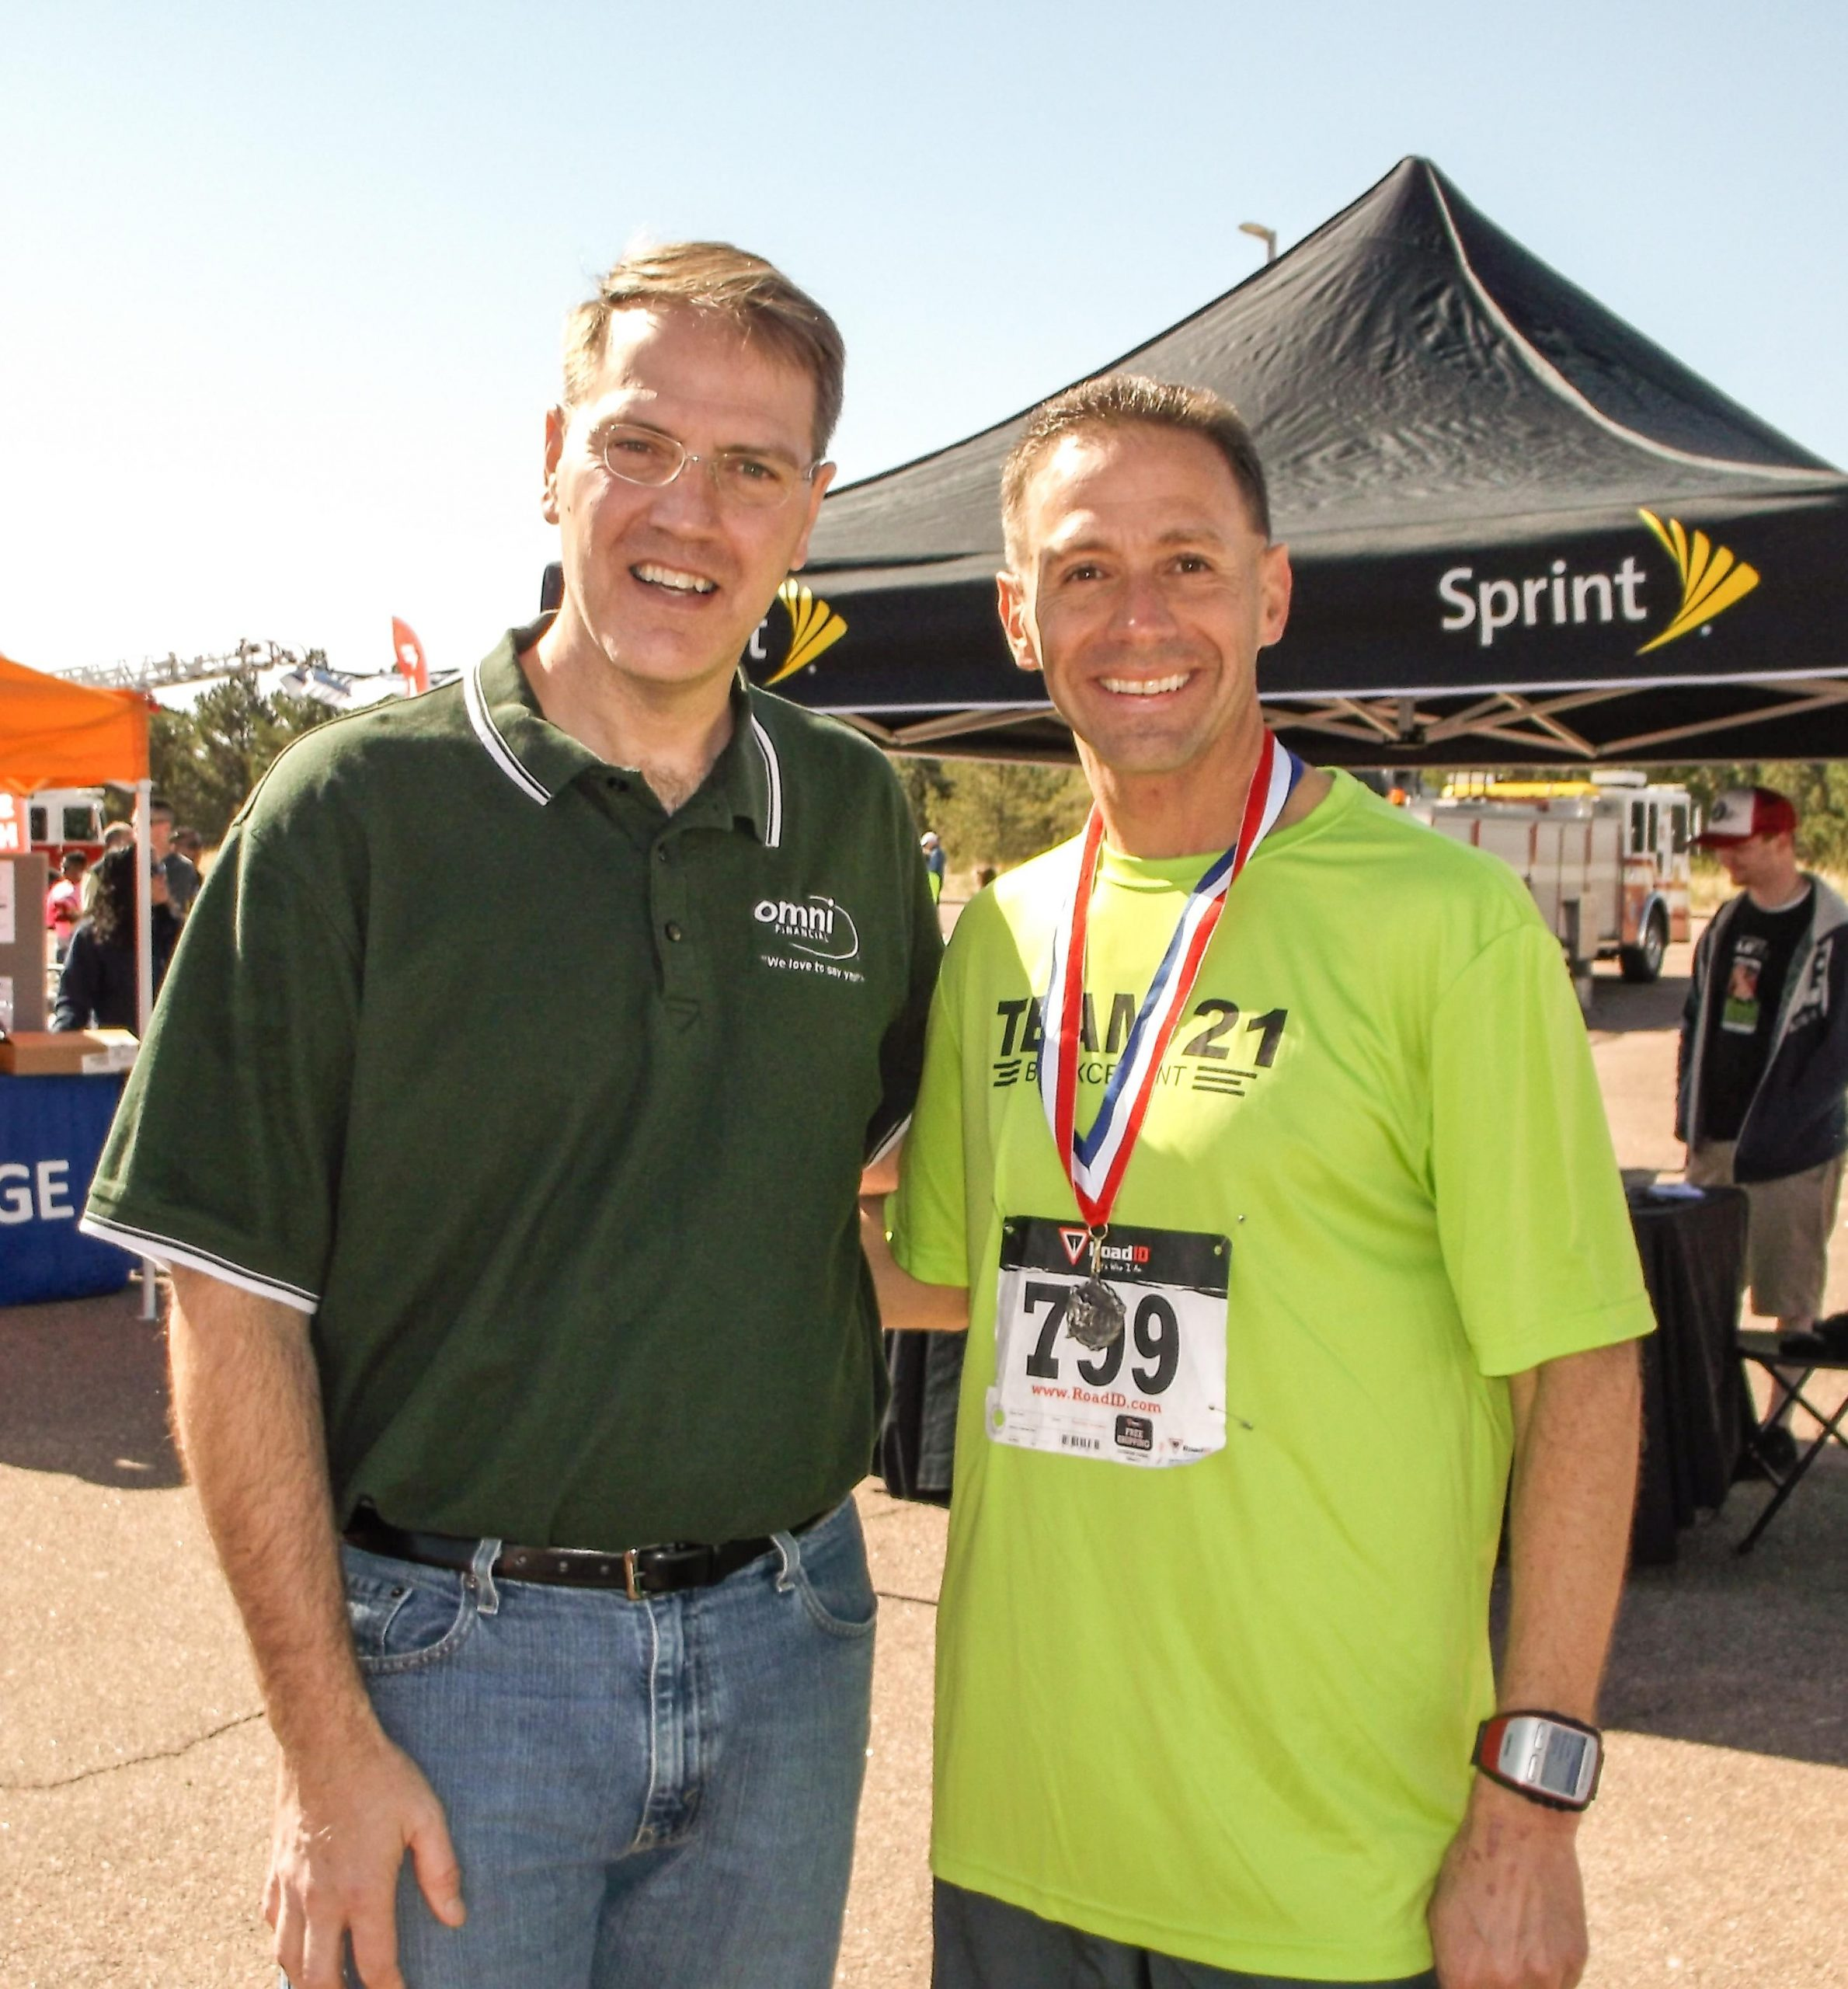 Dave and CMSGT Rich Redman_May_2014_Armed Forces Community Run_Ft Carson_CO_image